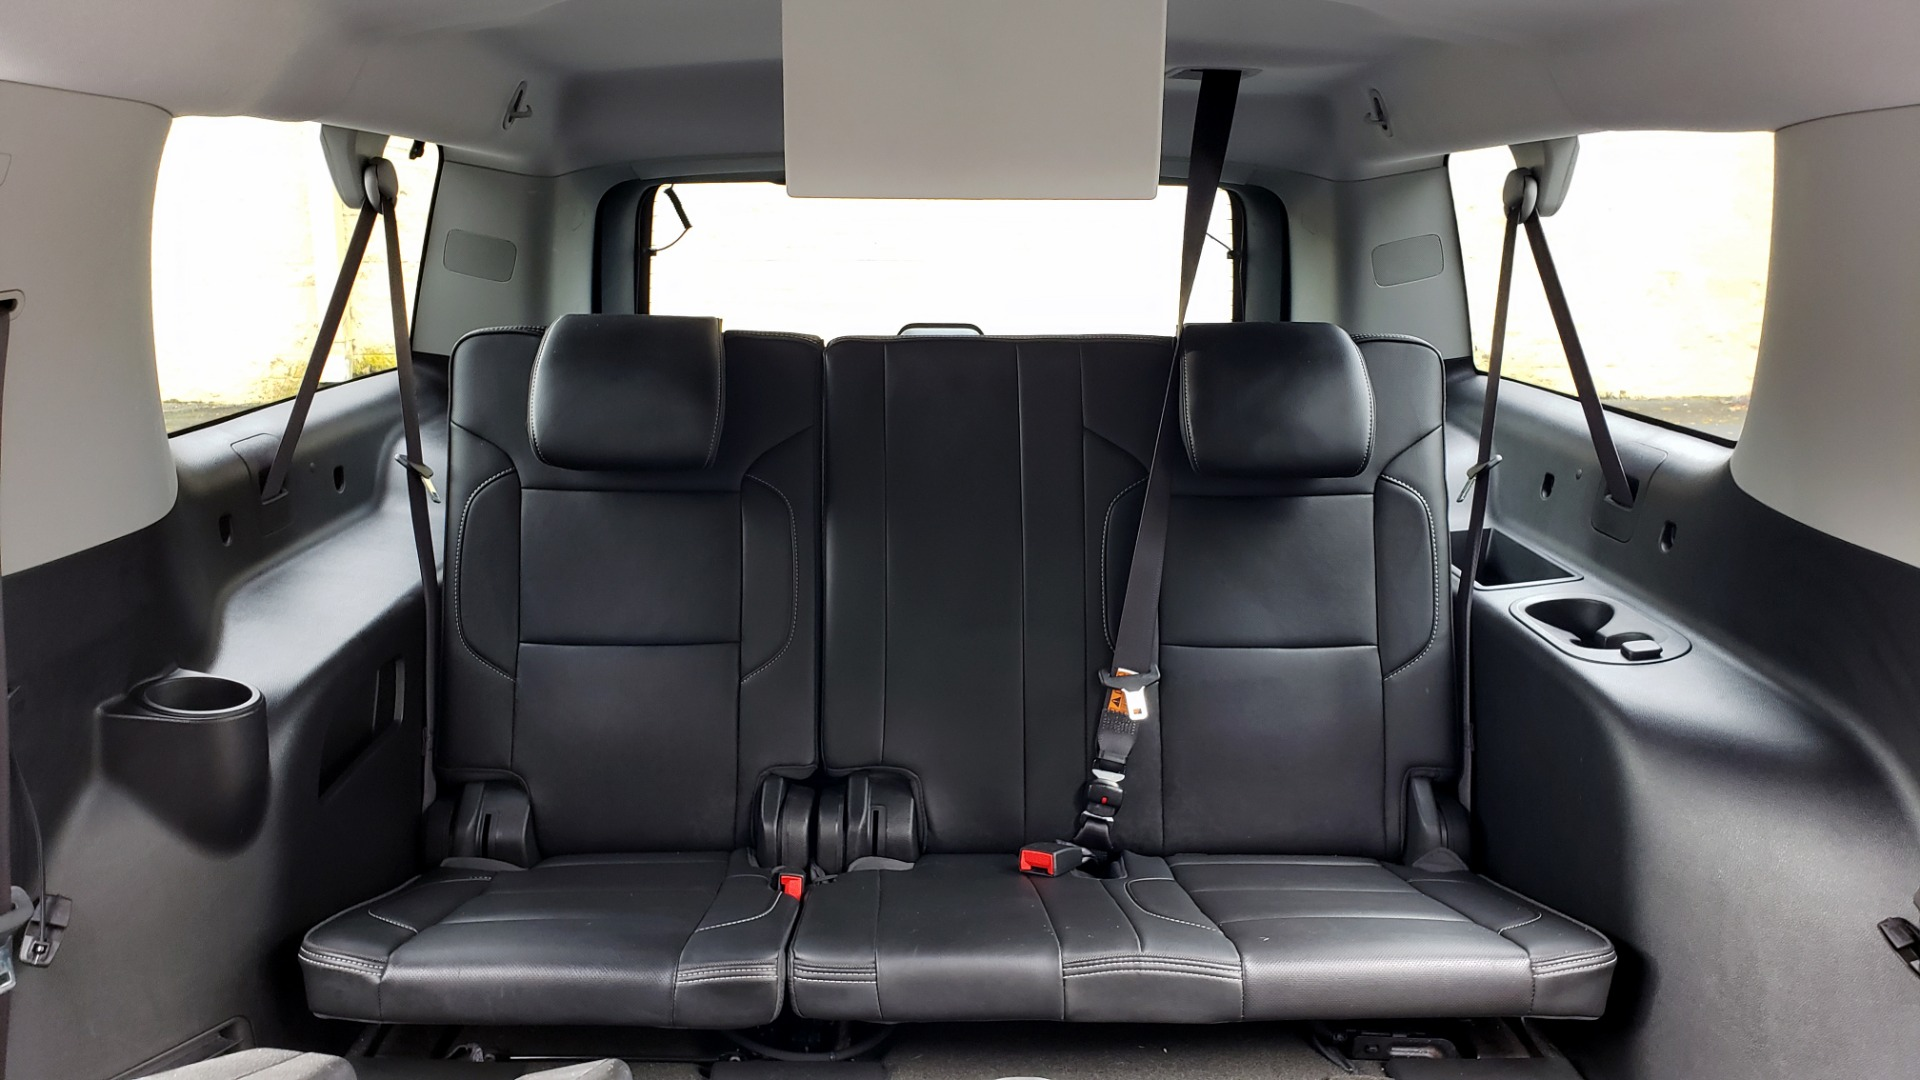 Used 2017 GMC YUKON XL DENALI 4WD / NAV / SUNROOF / ENT / 3-ROWS / BOSE / REARVIEW for sale $48,695 at Formula Imports in Charlotte NC 28227 73